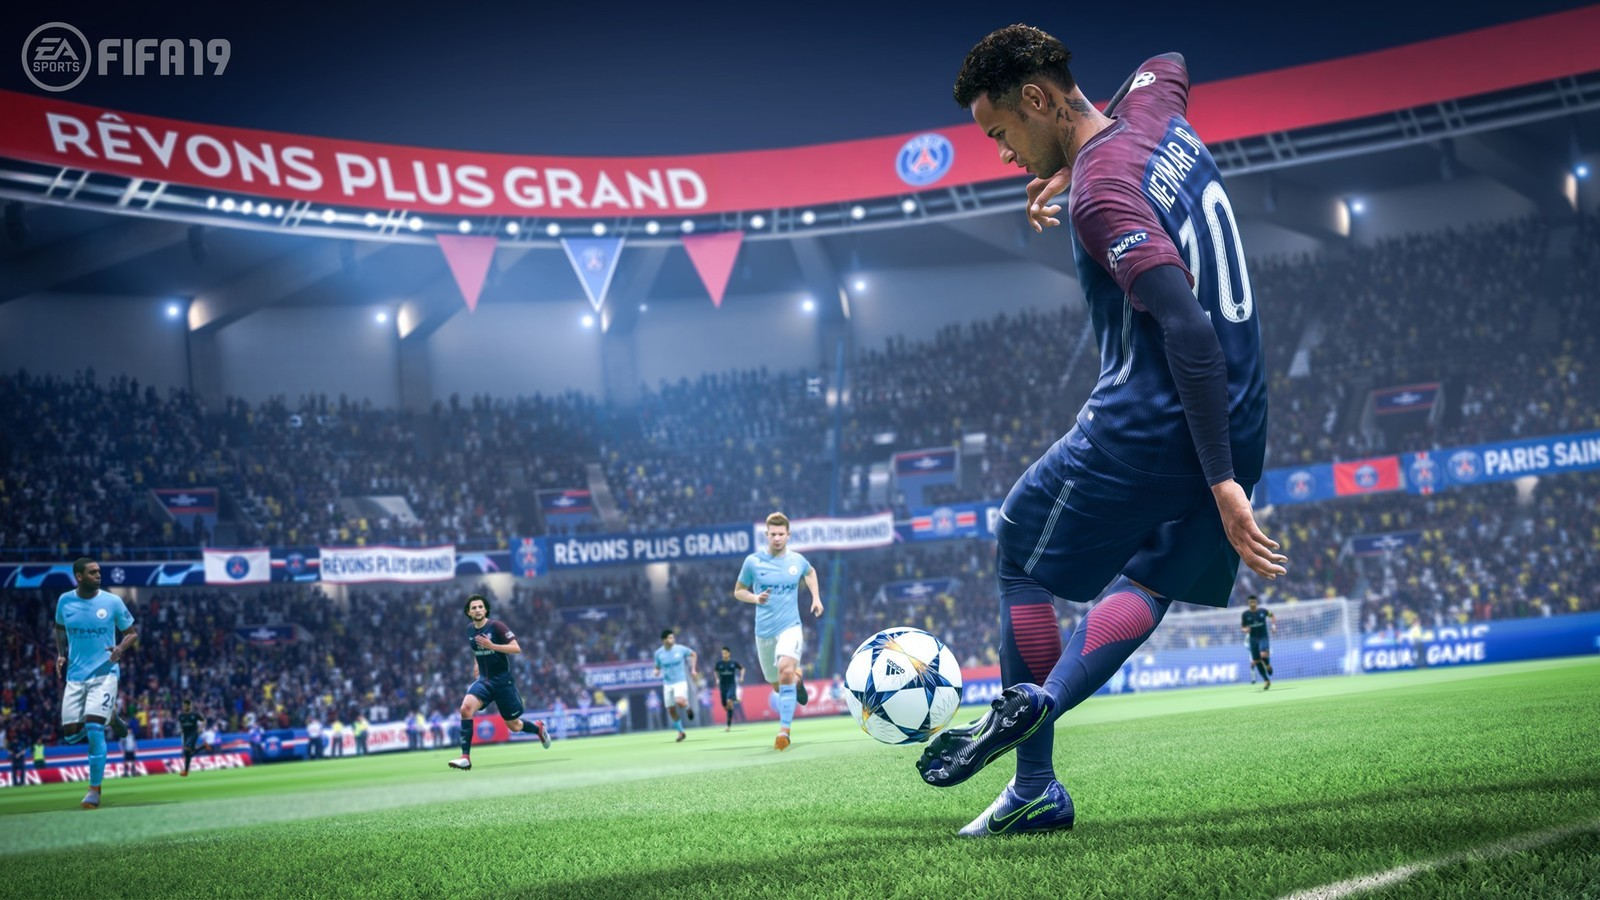 FIFA 19 Soundtrack Features Childish Gambino And More